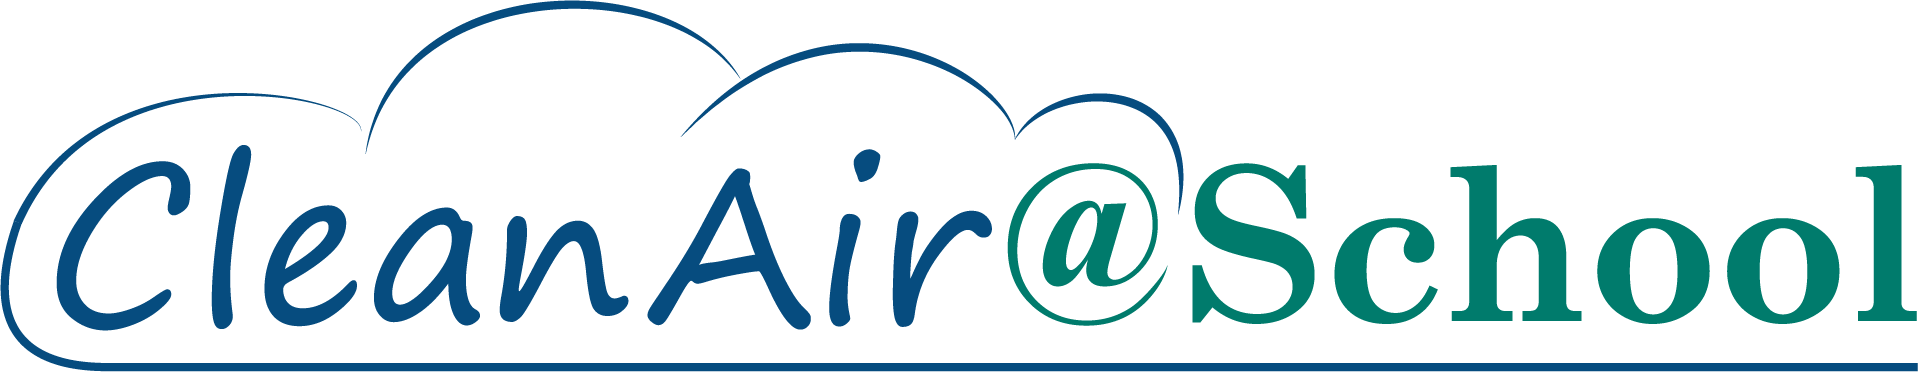 CleanAir-School_logo_whitebg.png